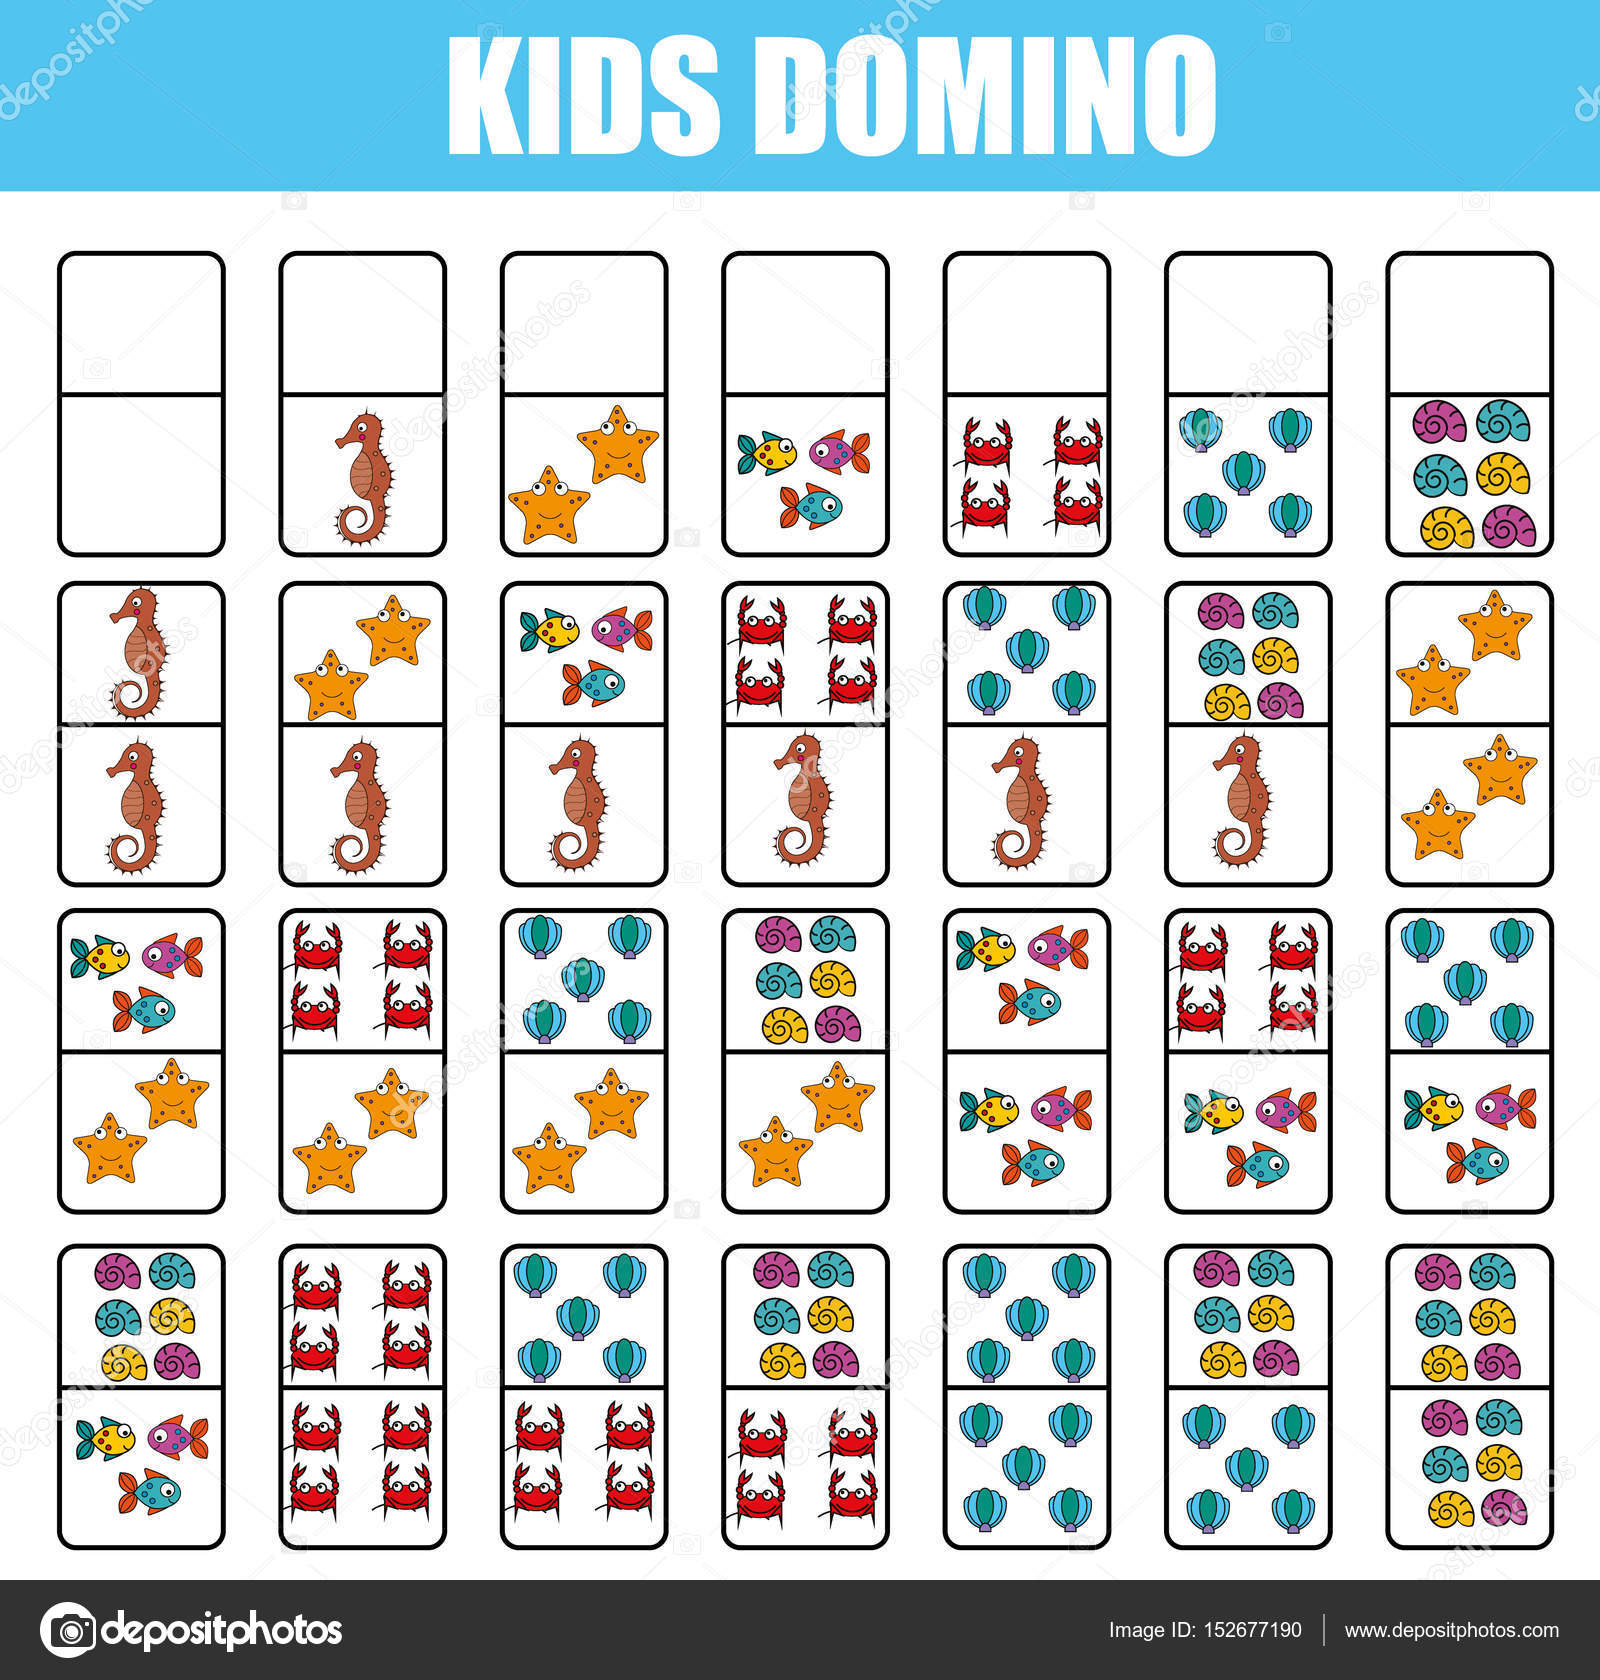 Domino for kids Children educational game Printable activity